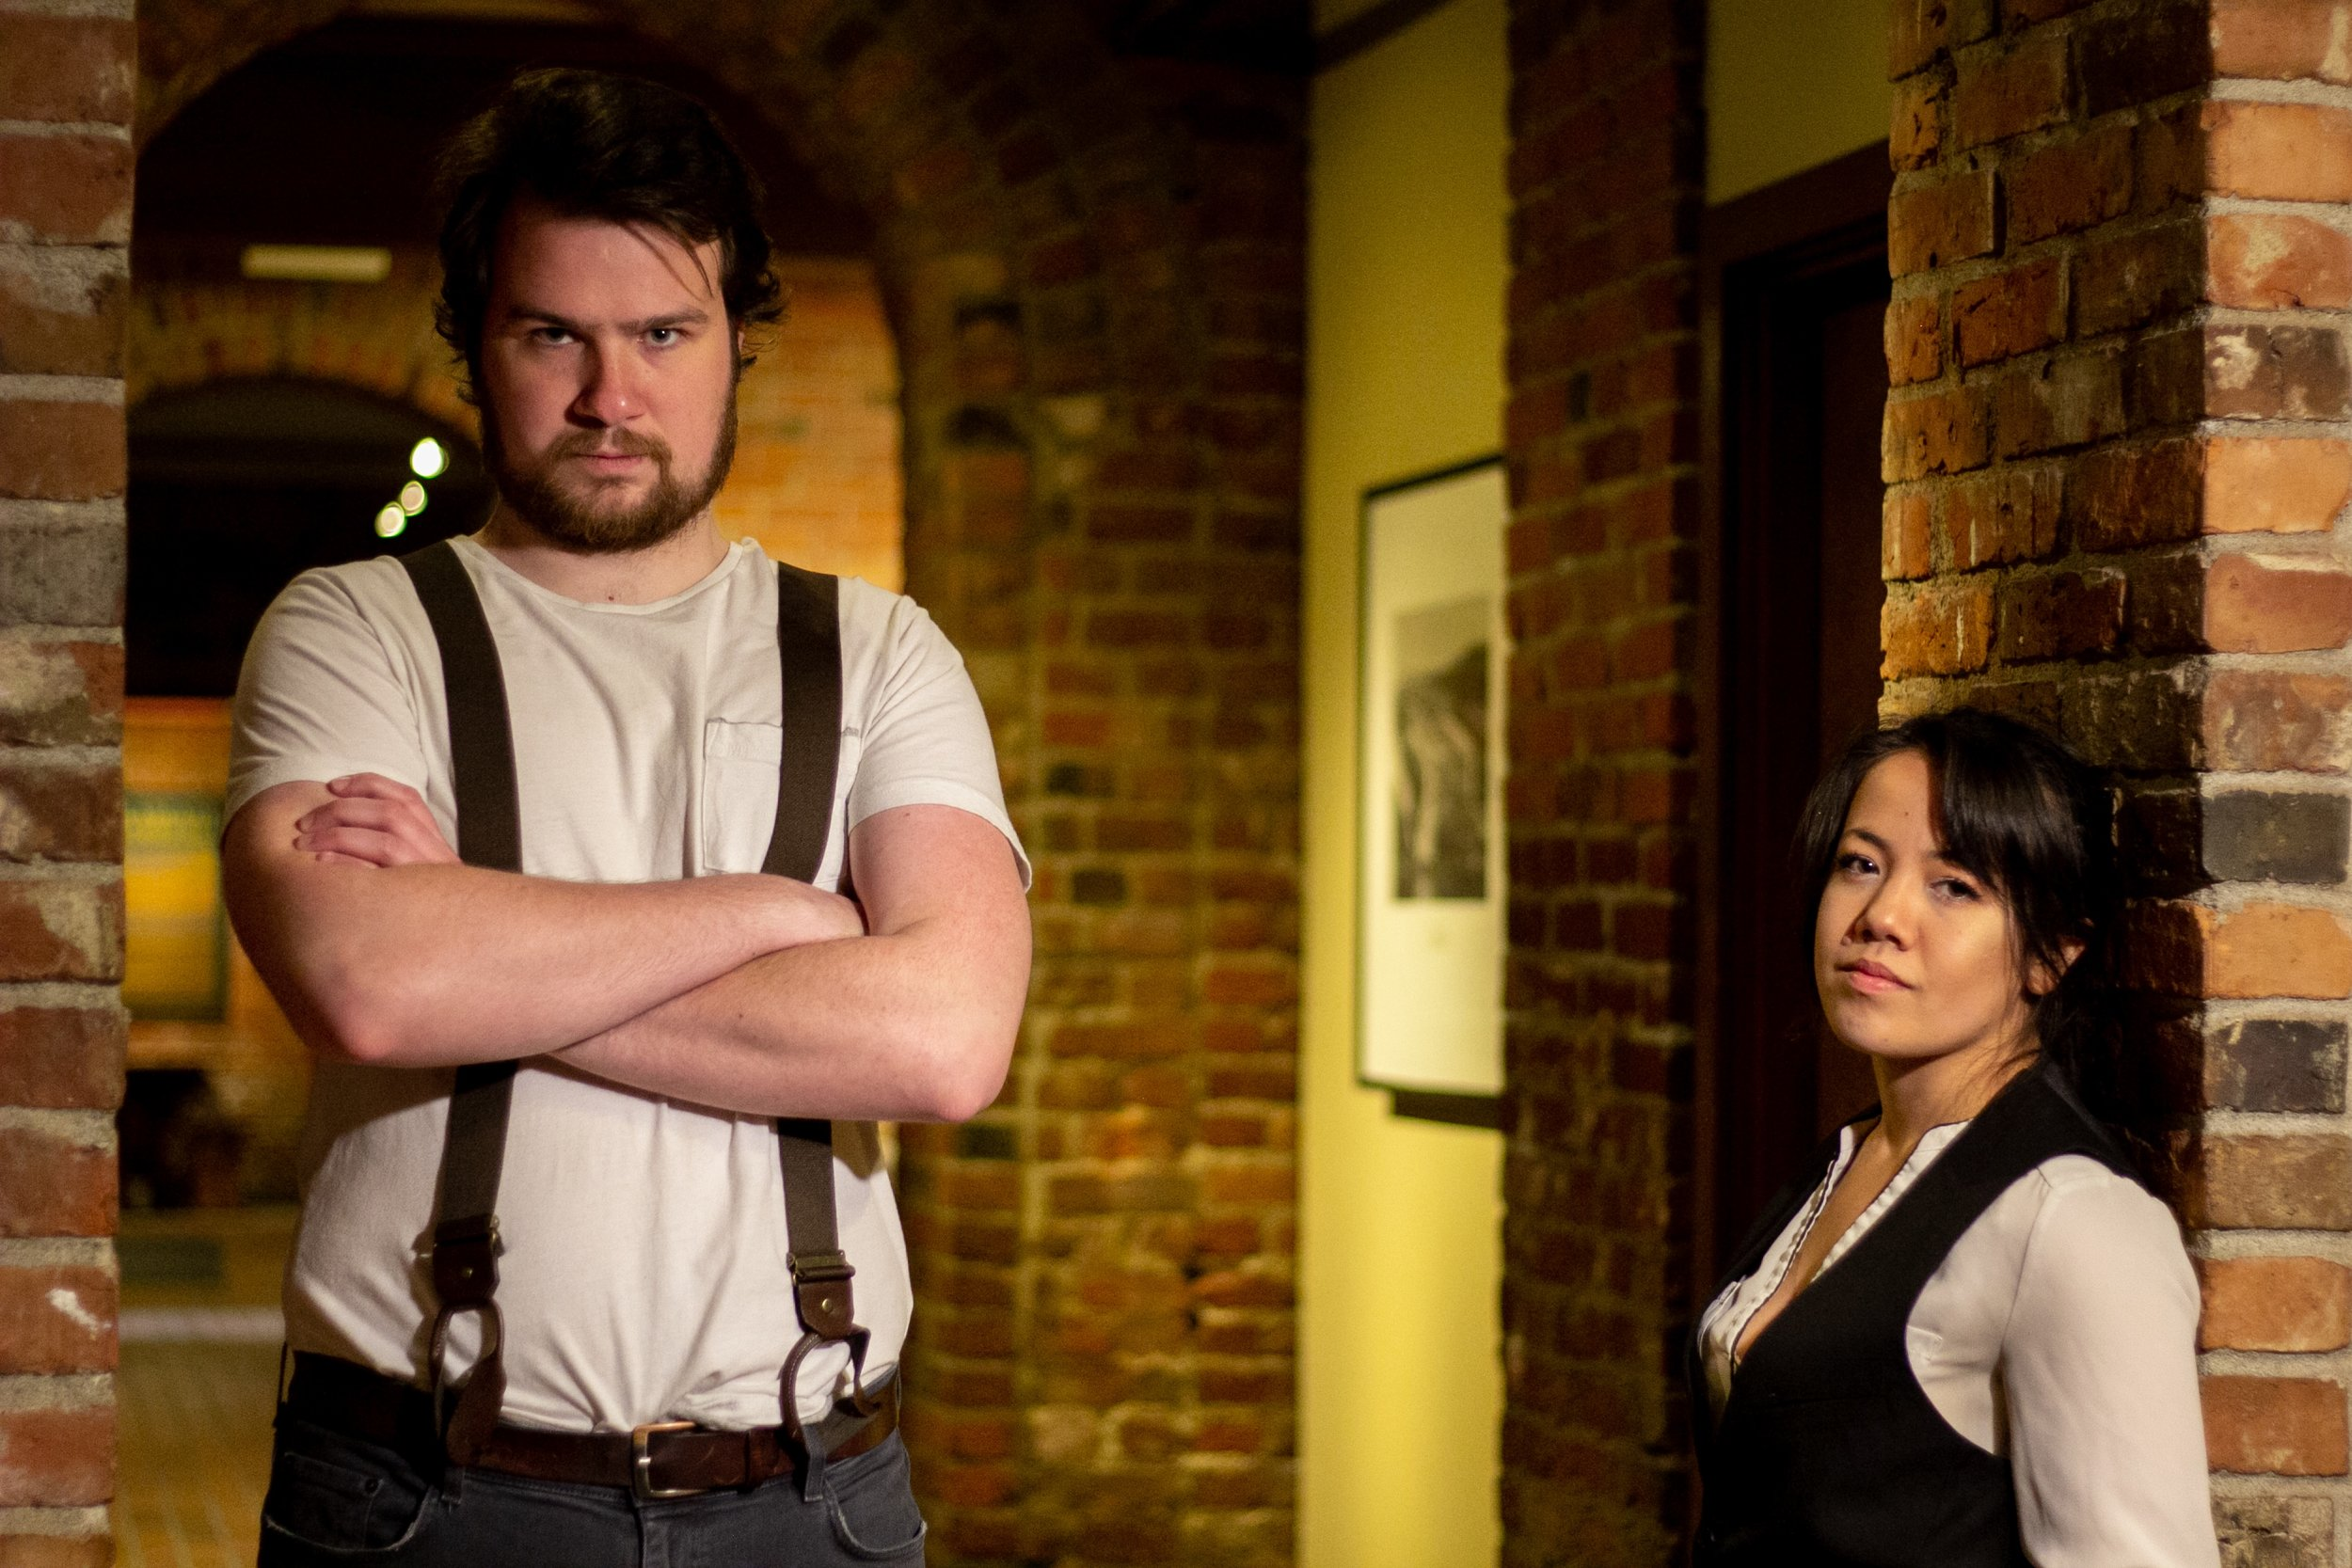 Jordan Moeller (left) and Amber Tanaka (right) as the arsonists Schmitz and Eisenring